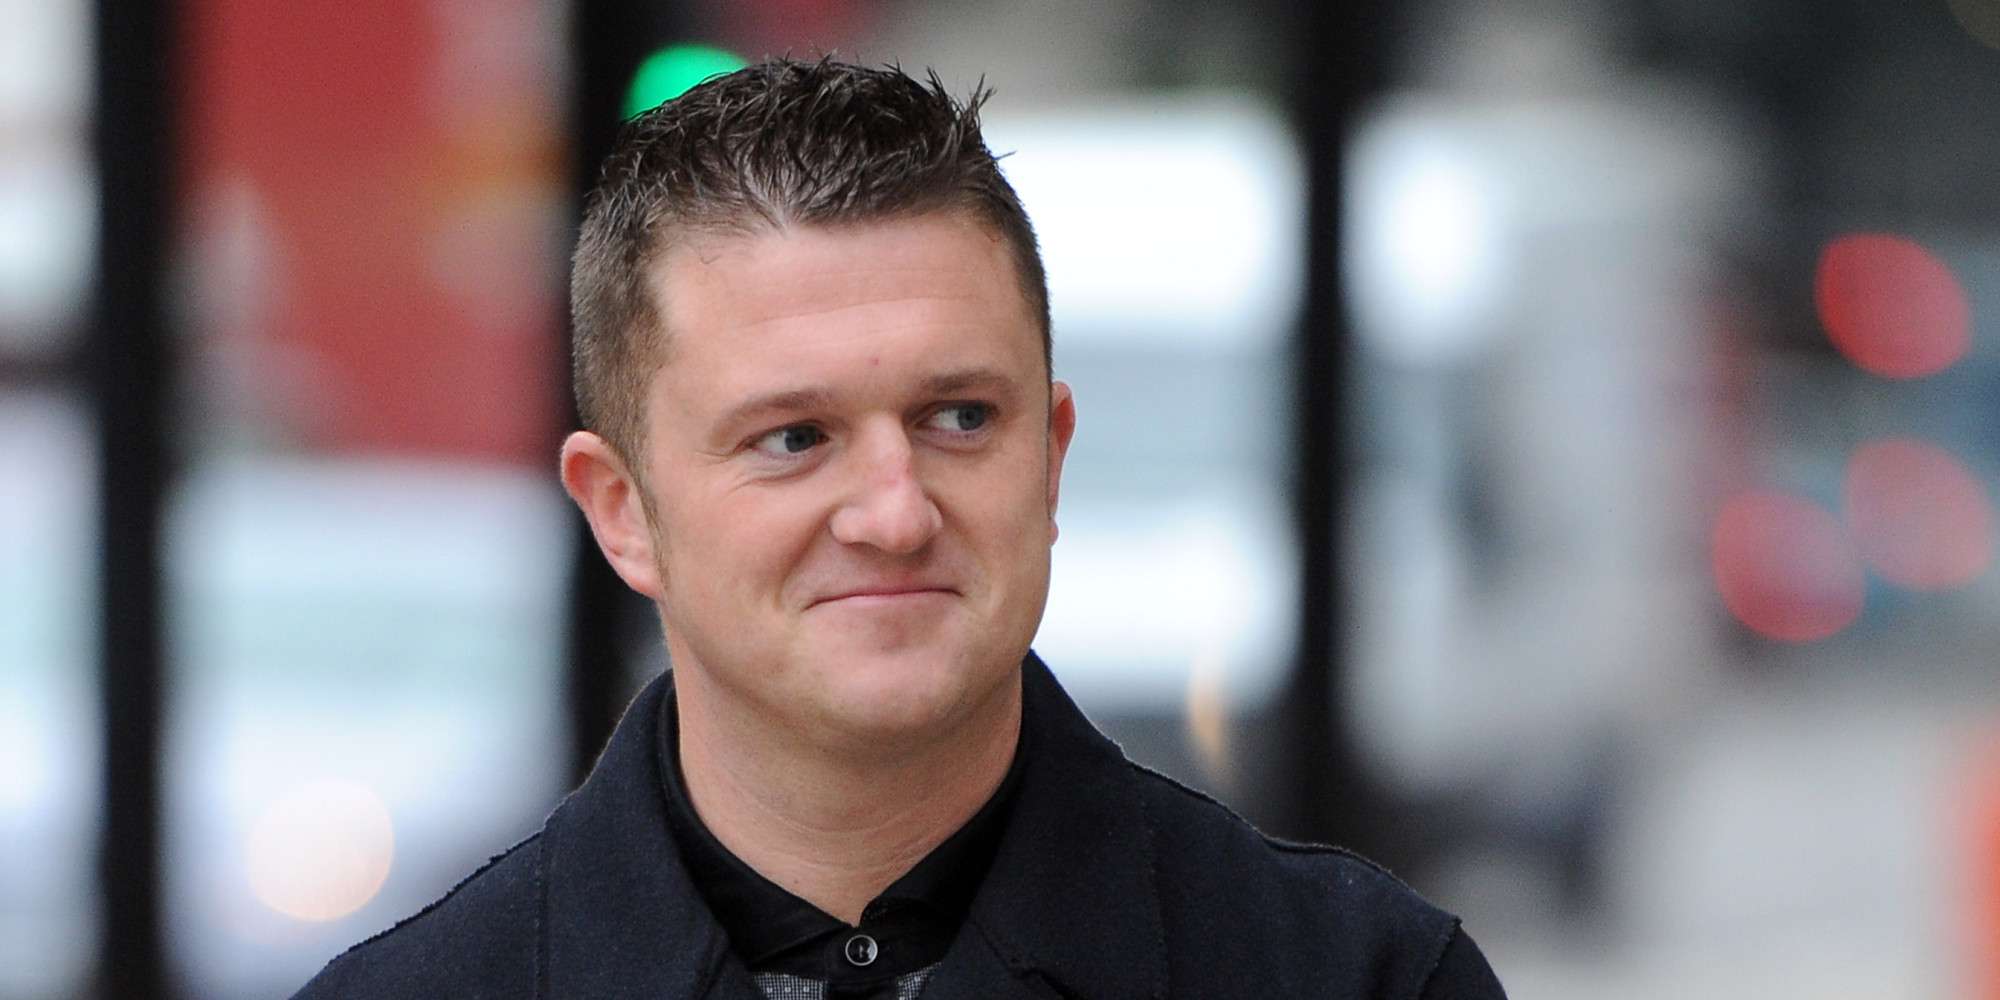 tommy robinson - photo #6